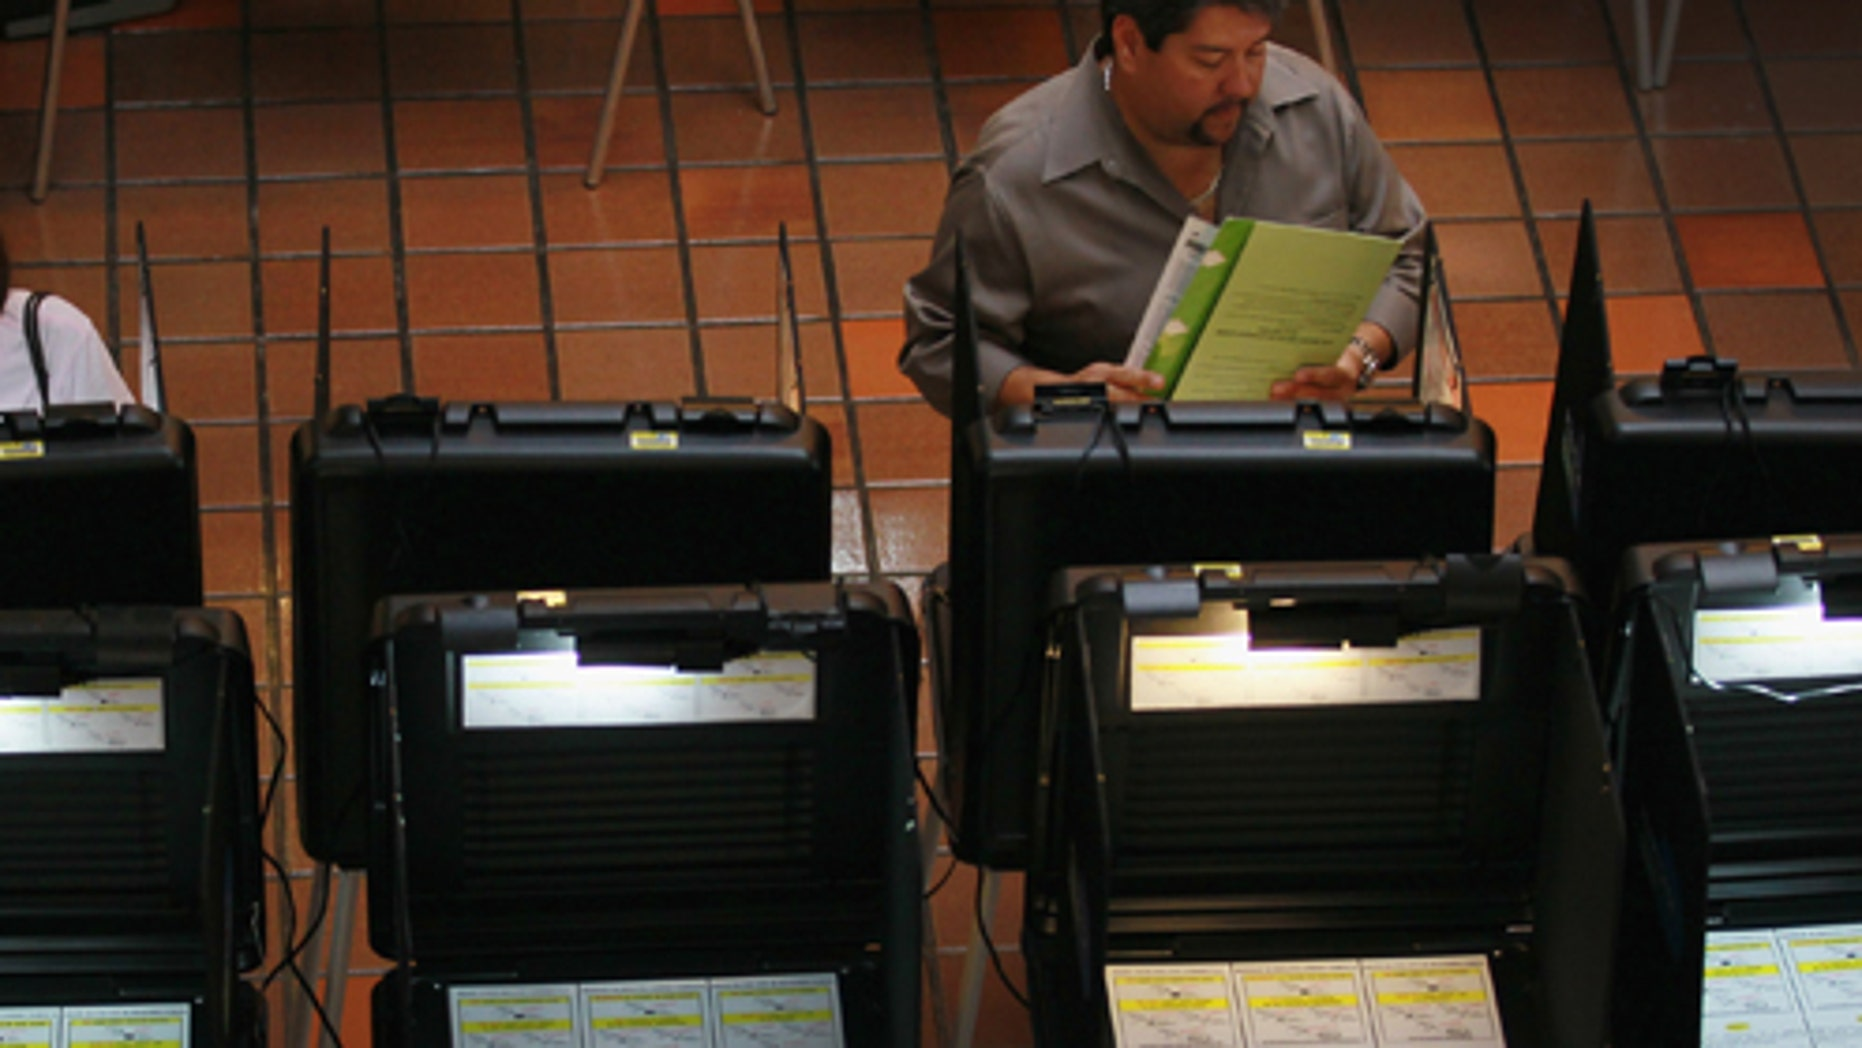 MIAMI, FL - MAY 09: Early voters fill out their ballots as they cast their votes before the general election date scheduled for May 24th, during the special election to select a new Miami-Dade mayor on May 9, 2011 in Miami, Florida. The former mayor Carlos Alvarez was voted out of office by voters unhappy with a property tax rate increase and the fact that he gave salary raises to county employees during a deep recession. The vote to oust the former mayor made Miami-Dade the most populous area ever to recall a local official. 11 candidates are running for the open seat.  (Photo by Joe Raedle/Getty Images)